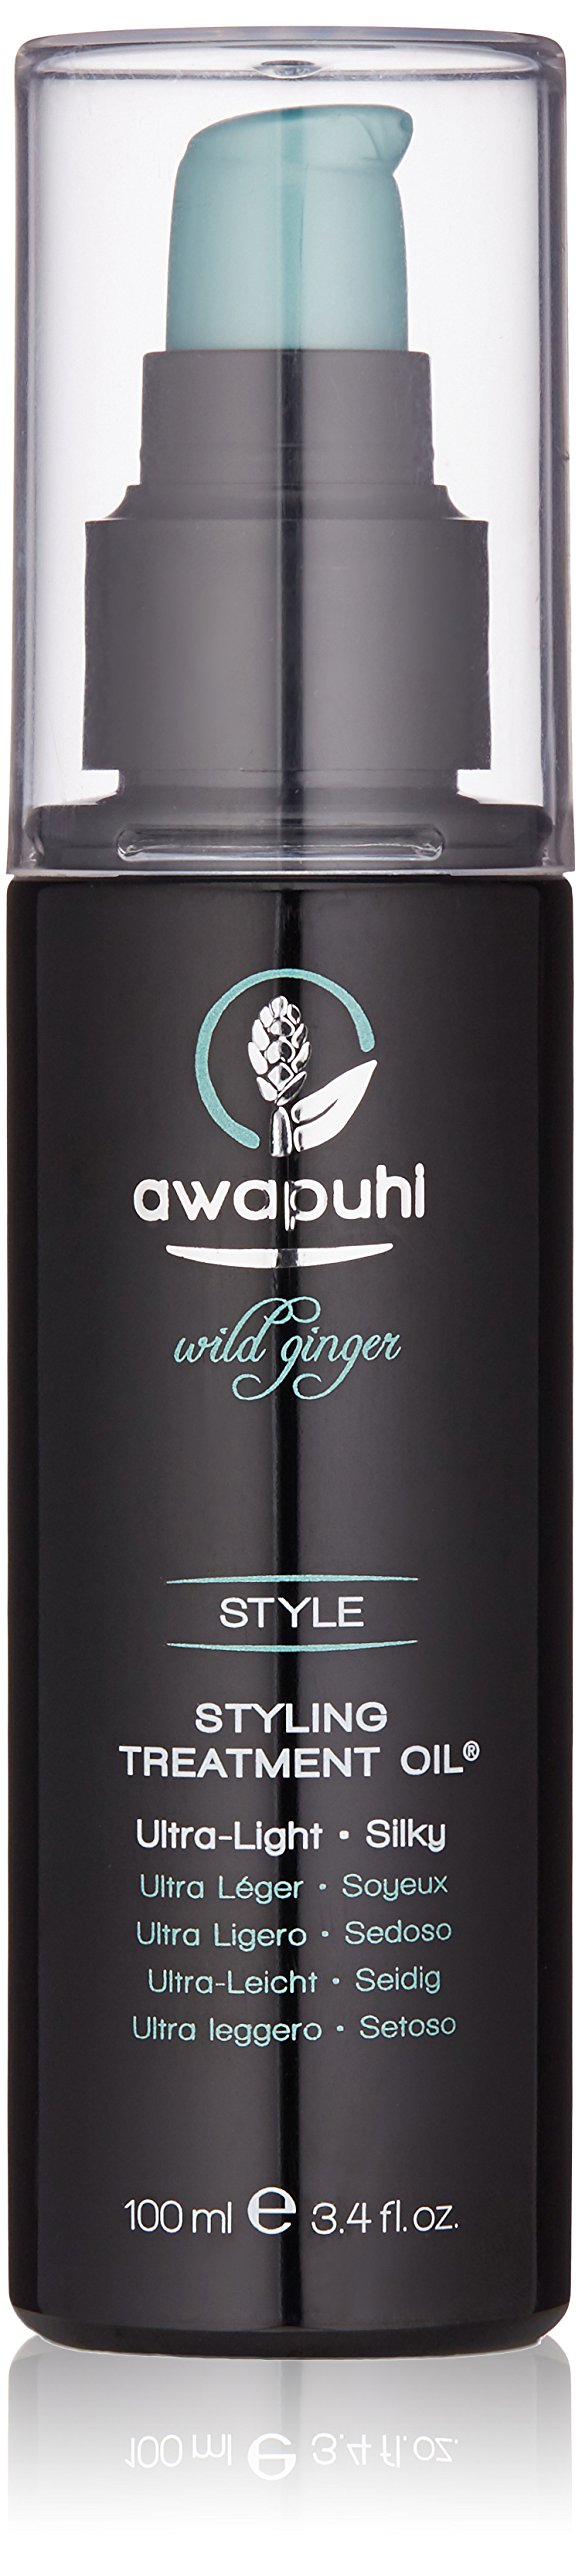 Paul Mitchell Awapuhi Wild Ginger Styling Treatment Oil 3.4 oz by Awapuhi Wild Ginger